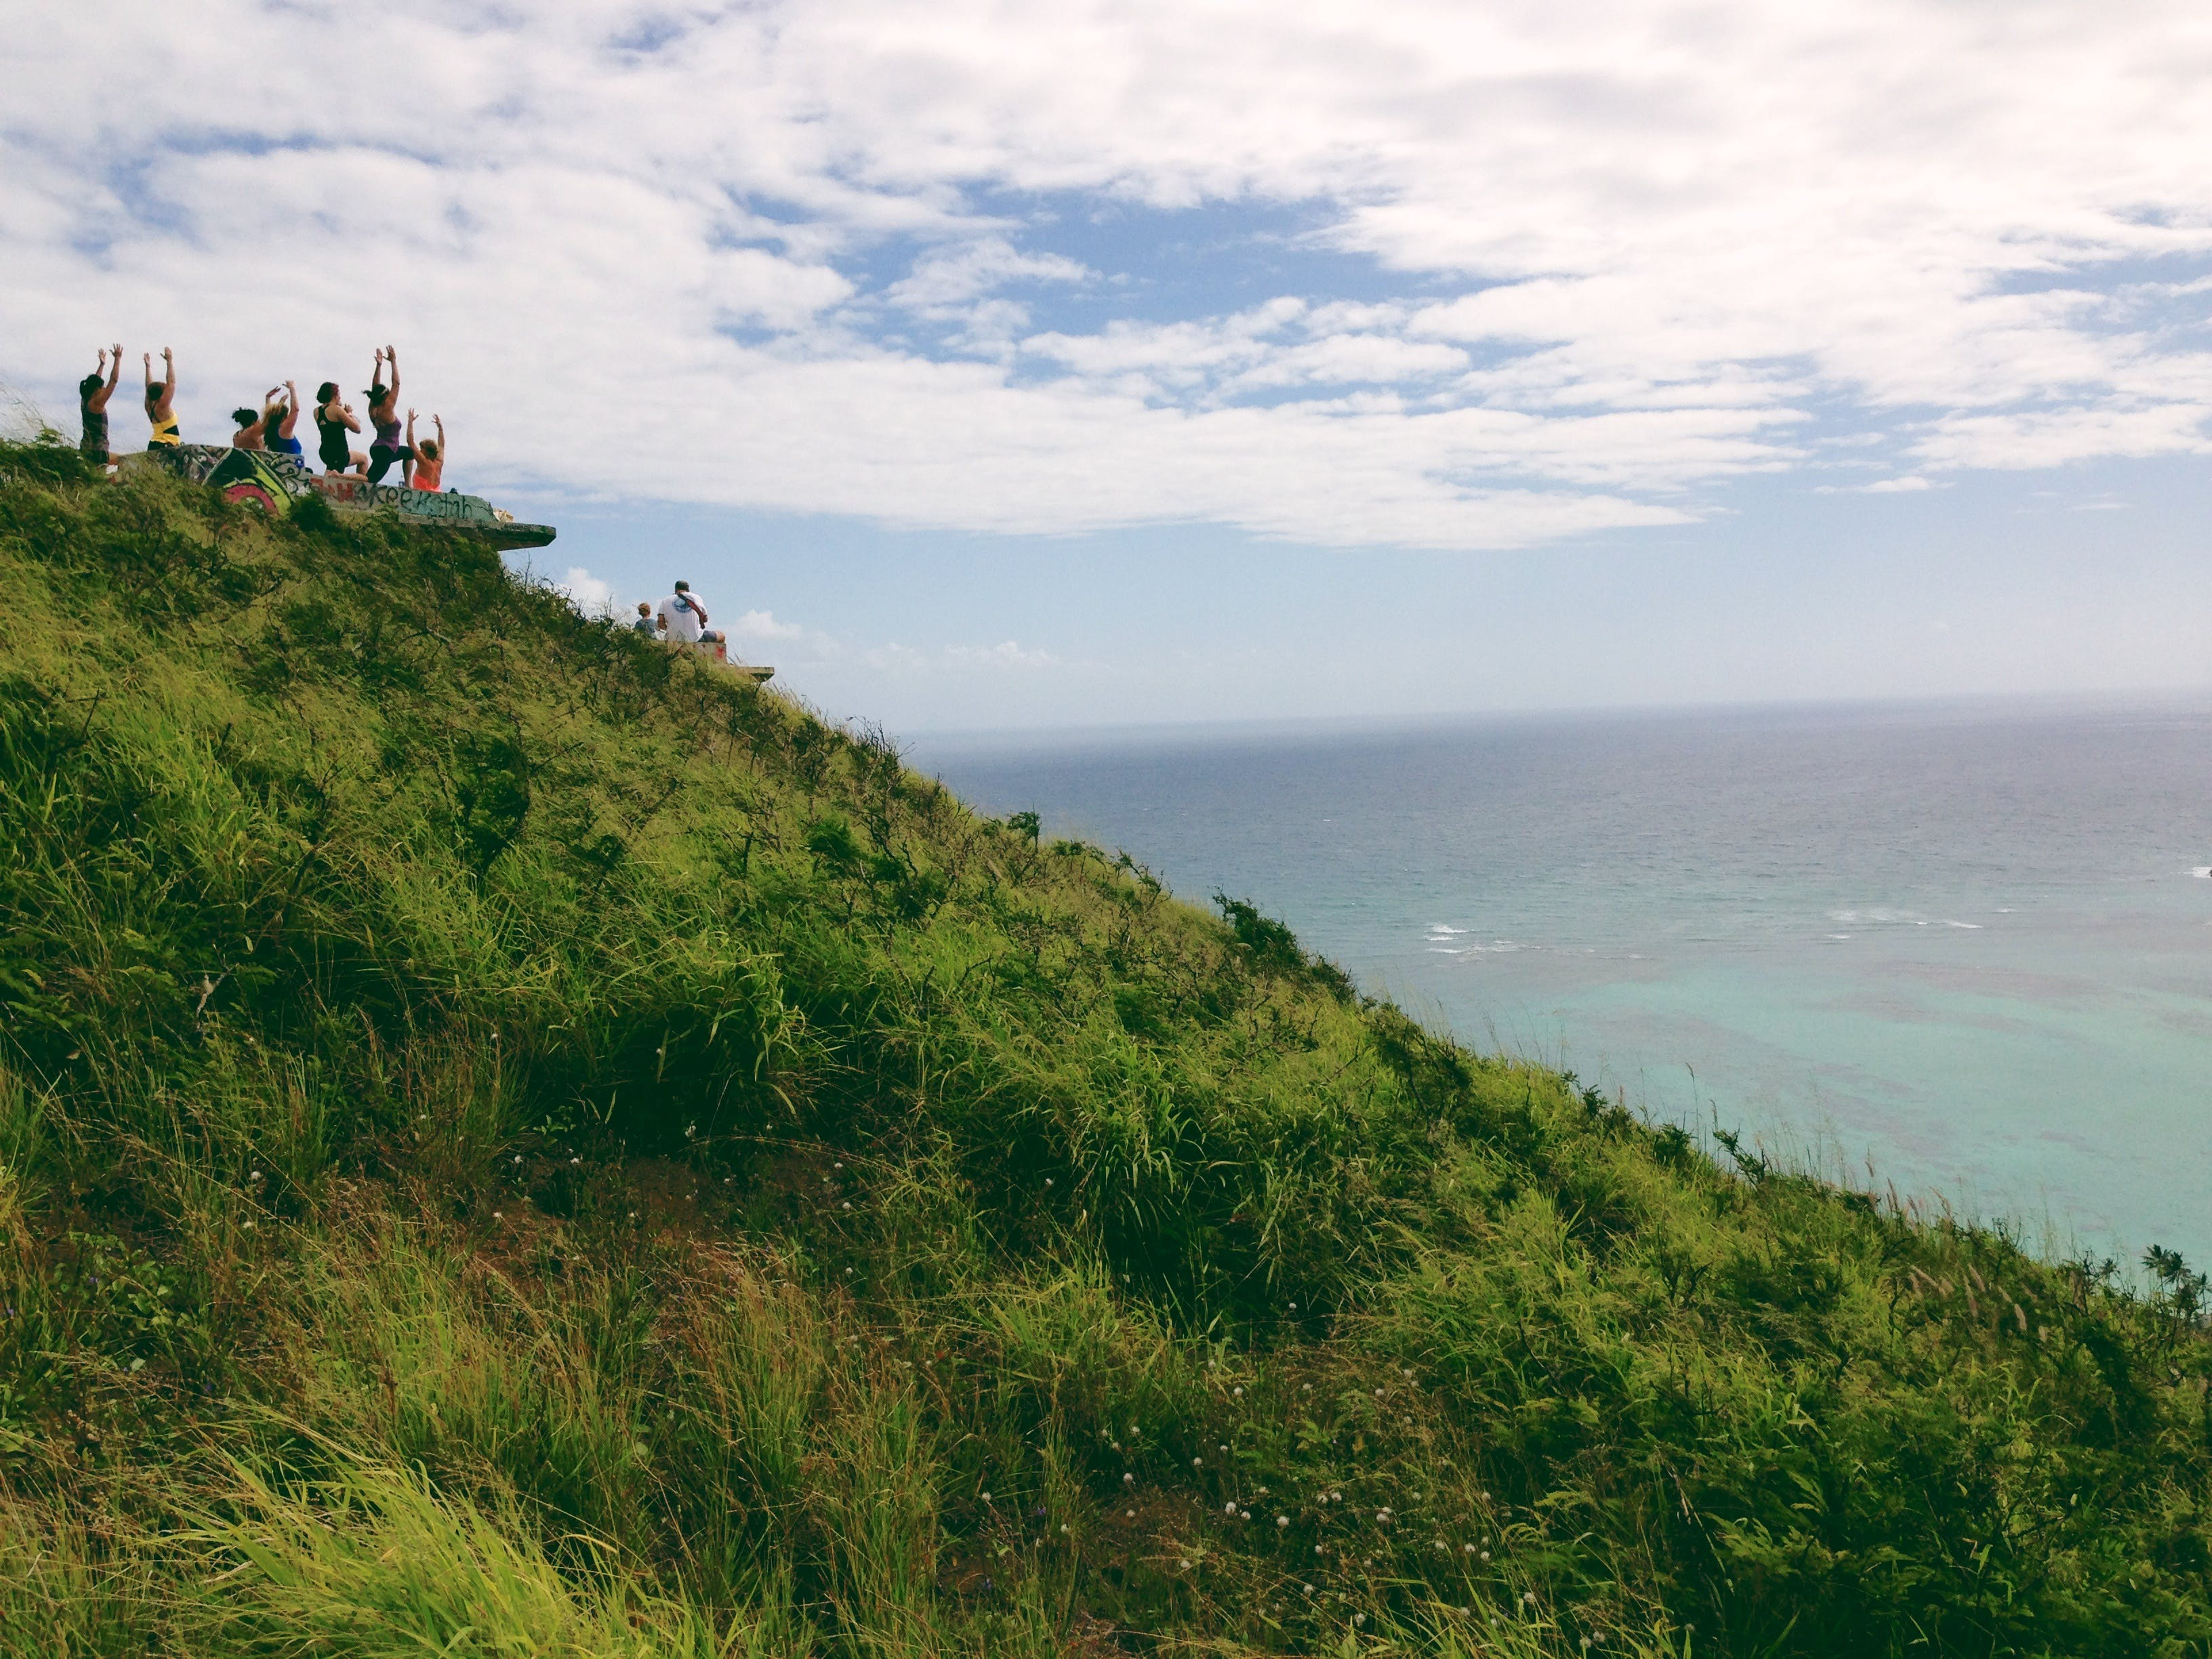 People Standing on a Green Mountain Peak Watching the Clear Blue Body of Water